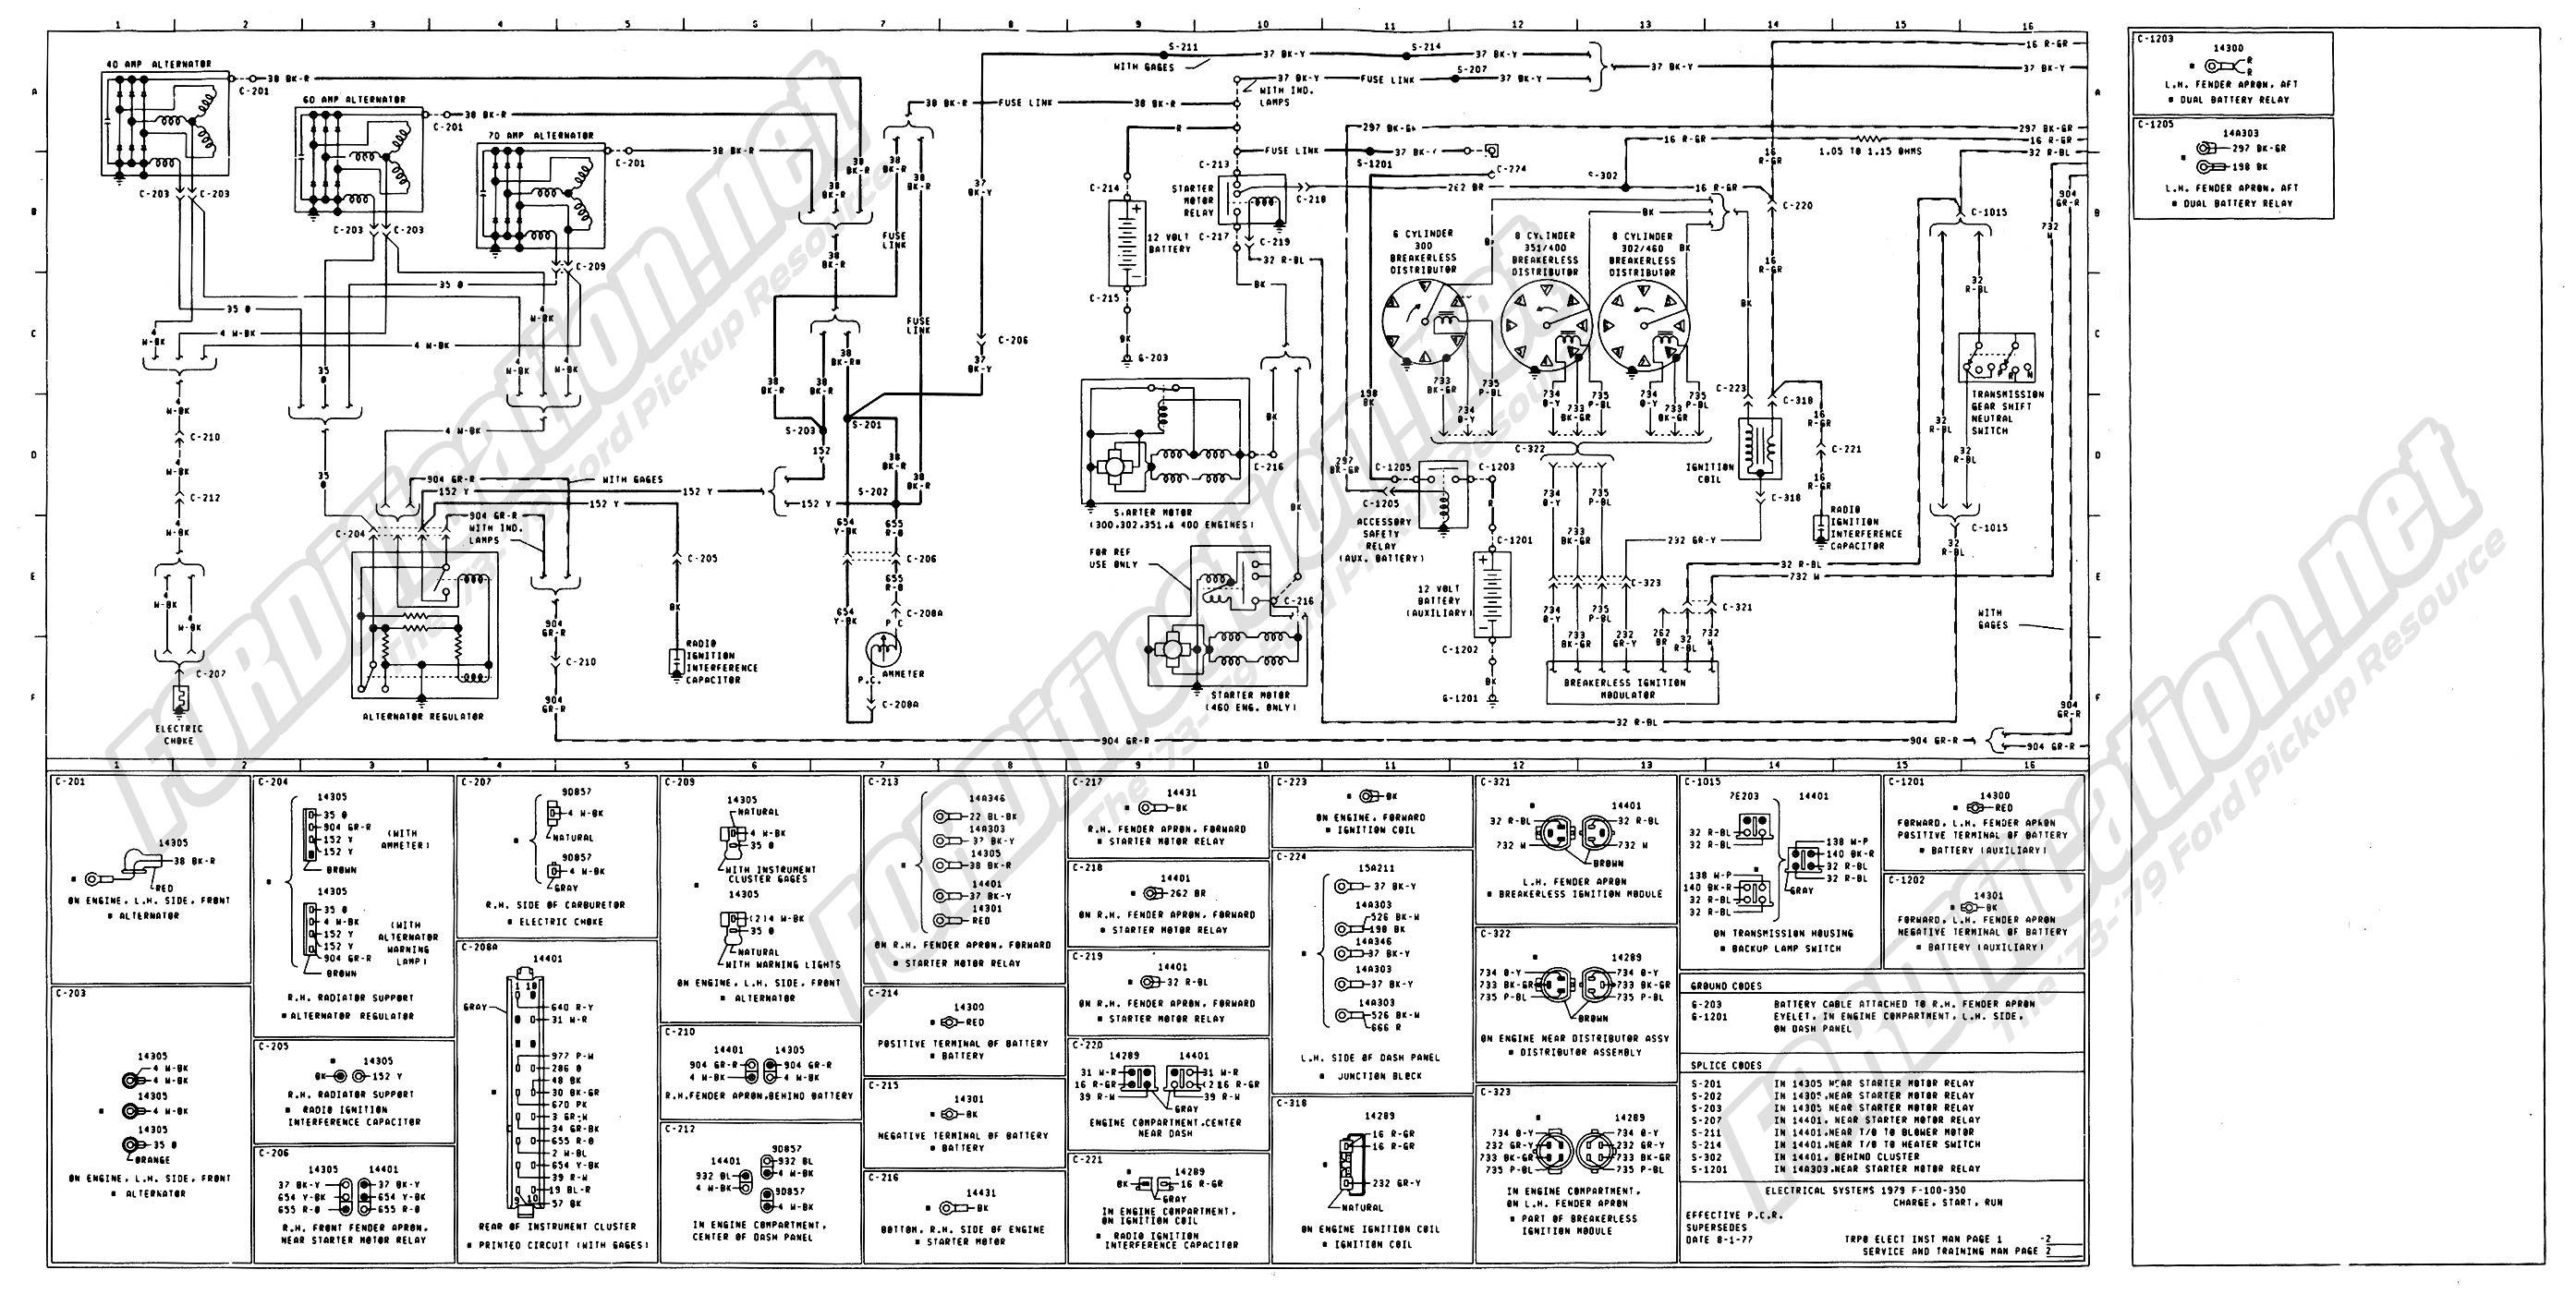 1973 1979 ford truck wiring diagrams schematics fordification net rh fordification net 79 ford f100 tail light wiring diagram 1979 ford f150 wiring diagram